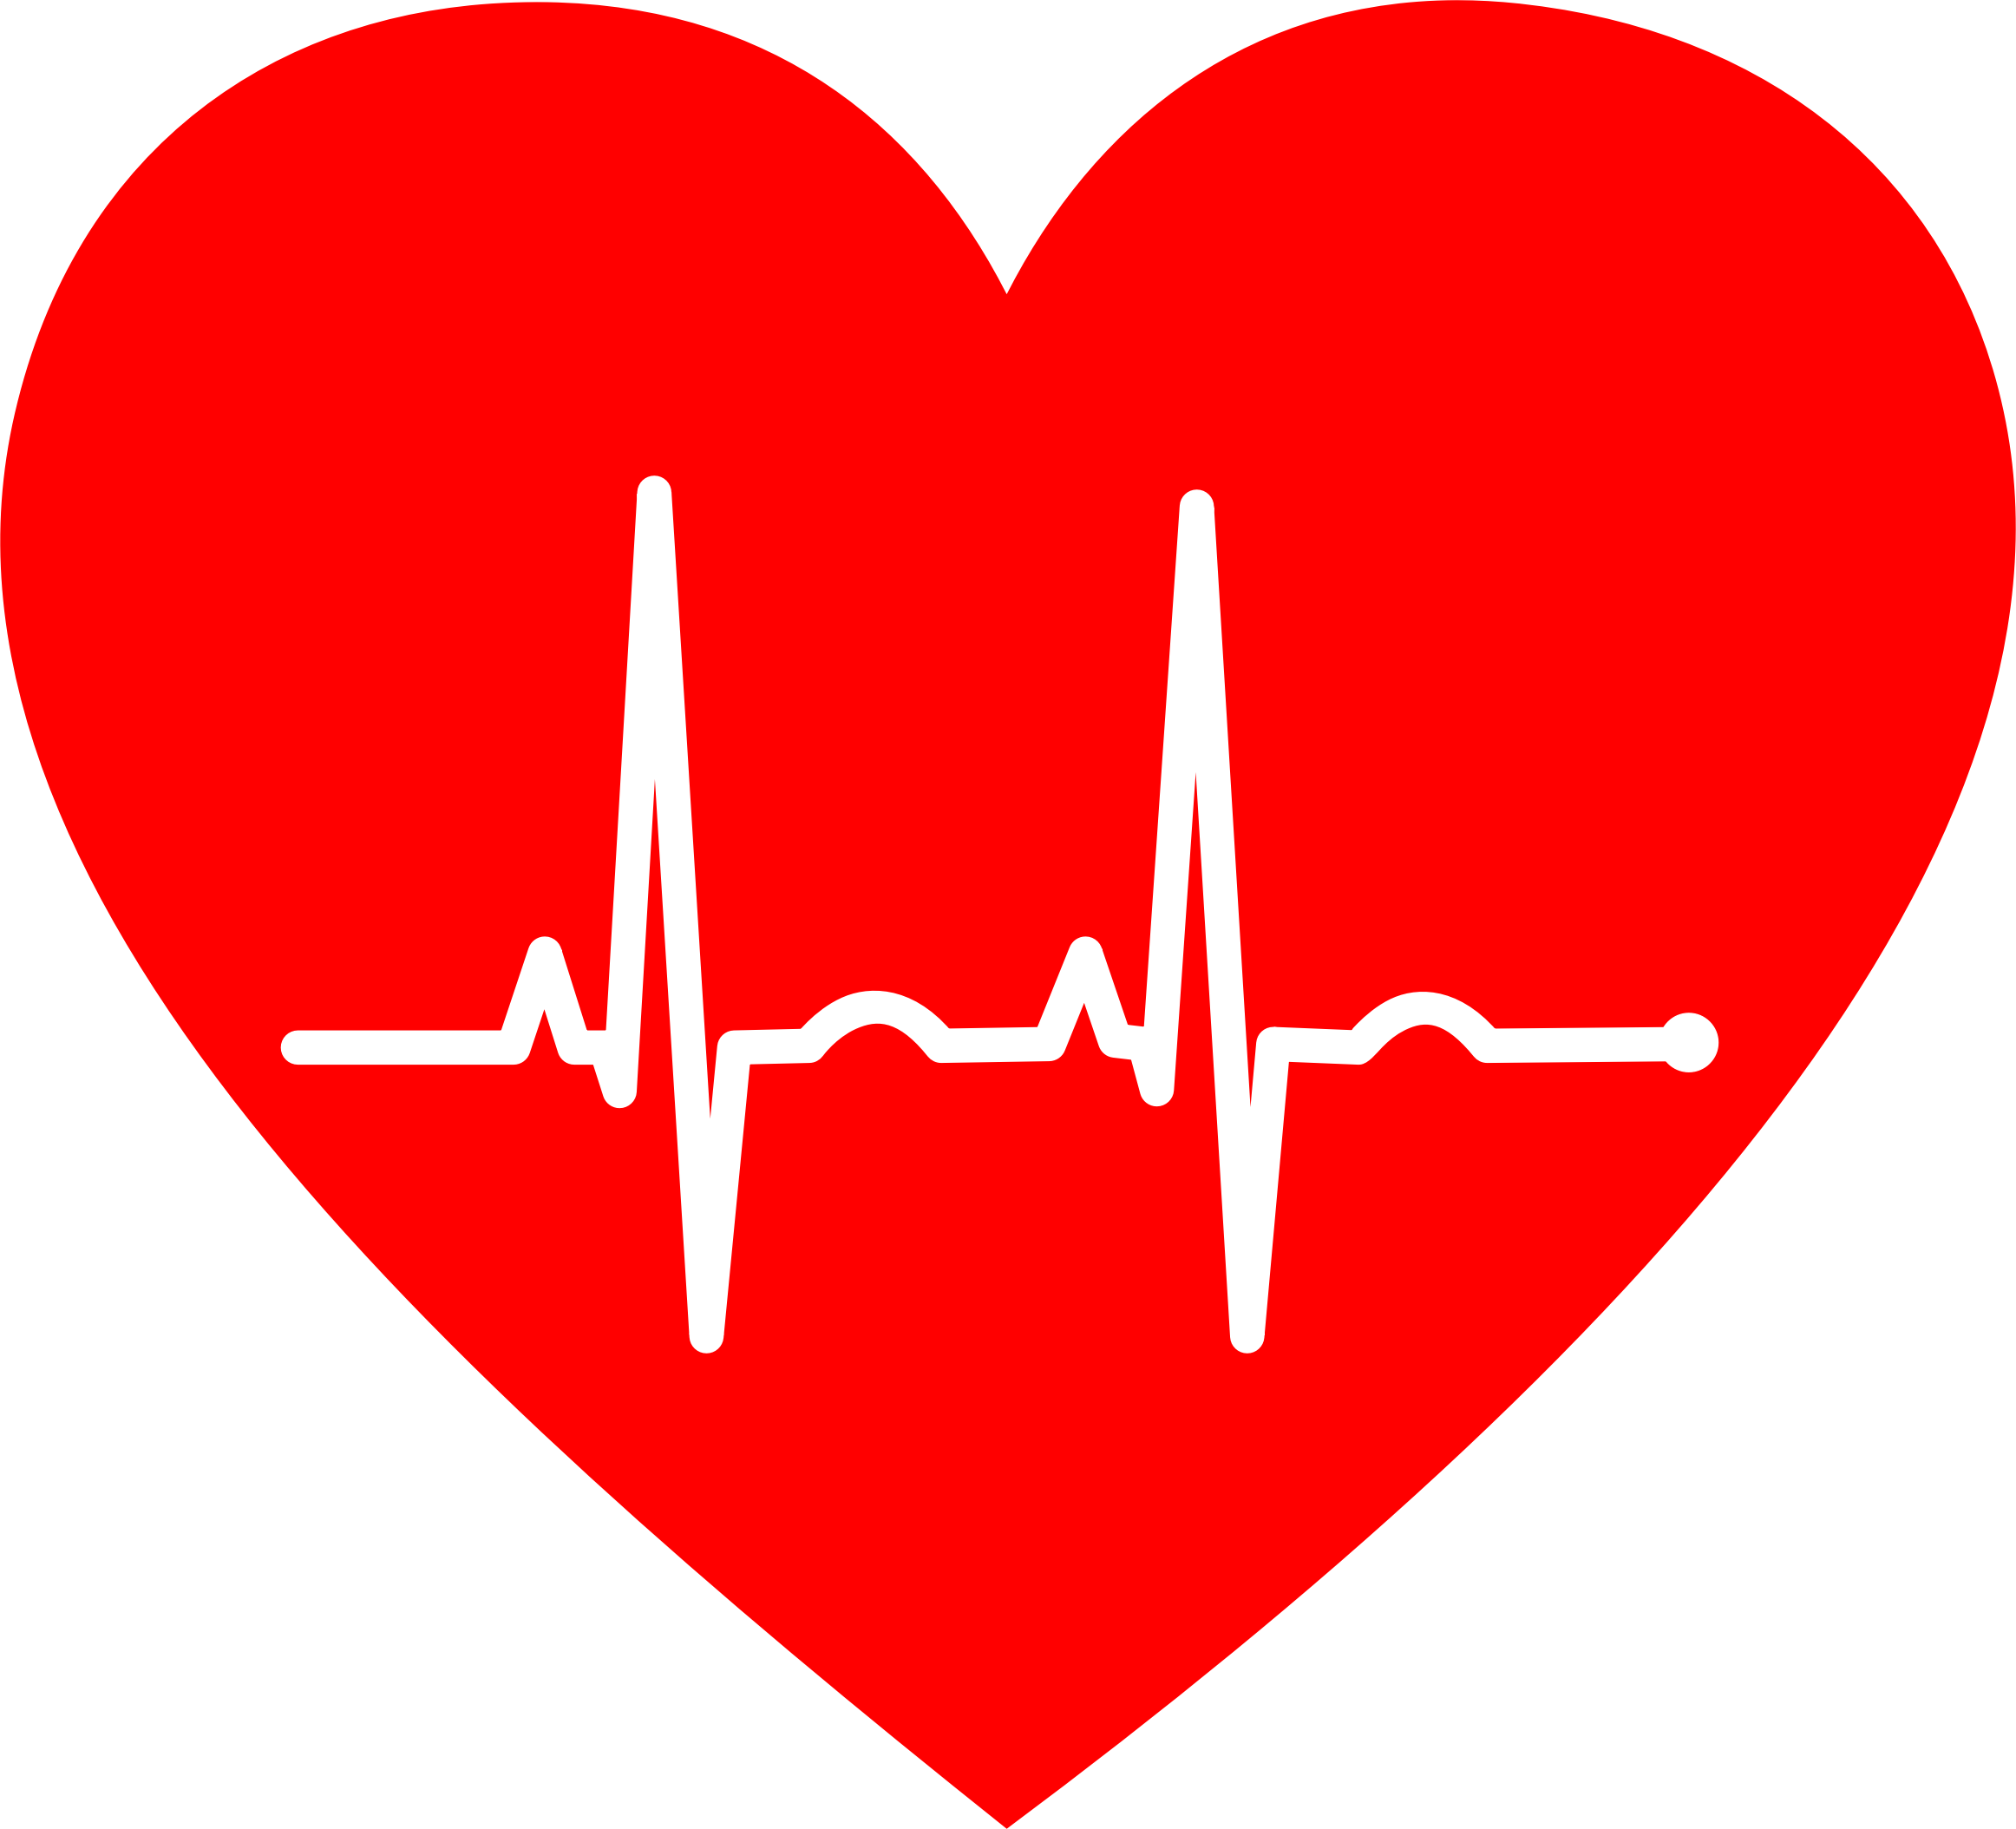 Heart with ekg line clipart graphic download Clipart - EKG Heart graphic download